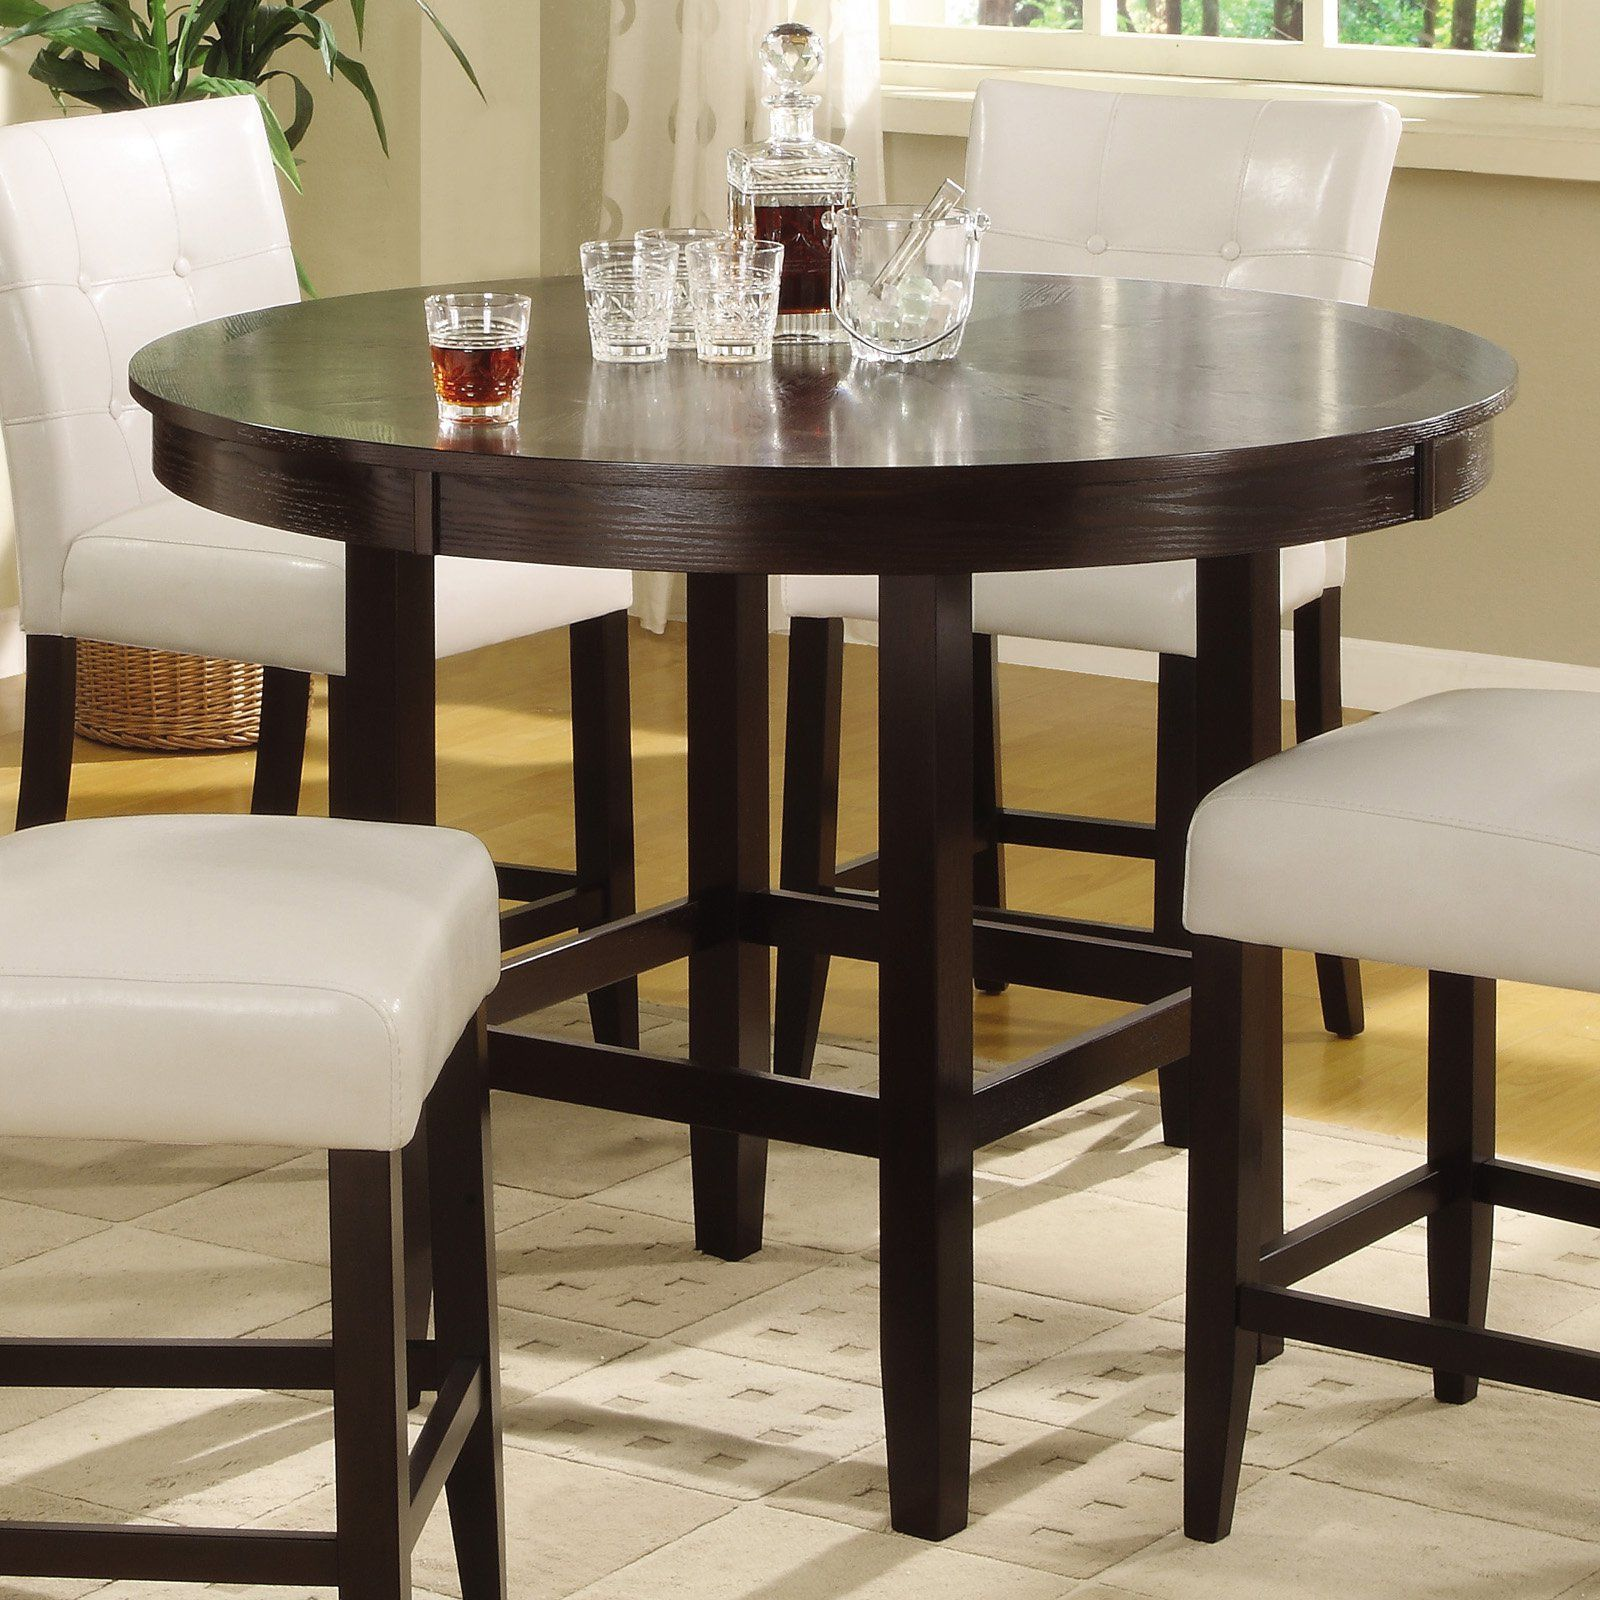 Round counter height dining table dark chocolate 2y2162r48